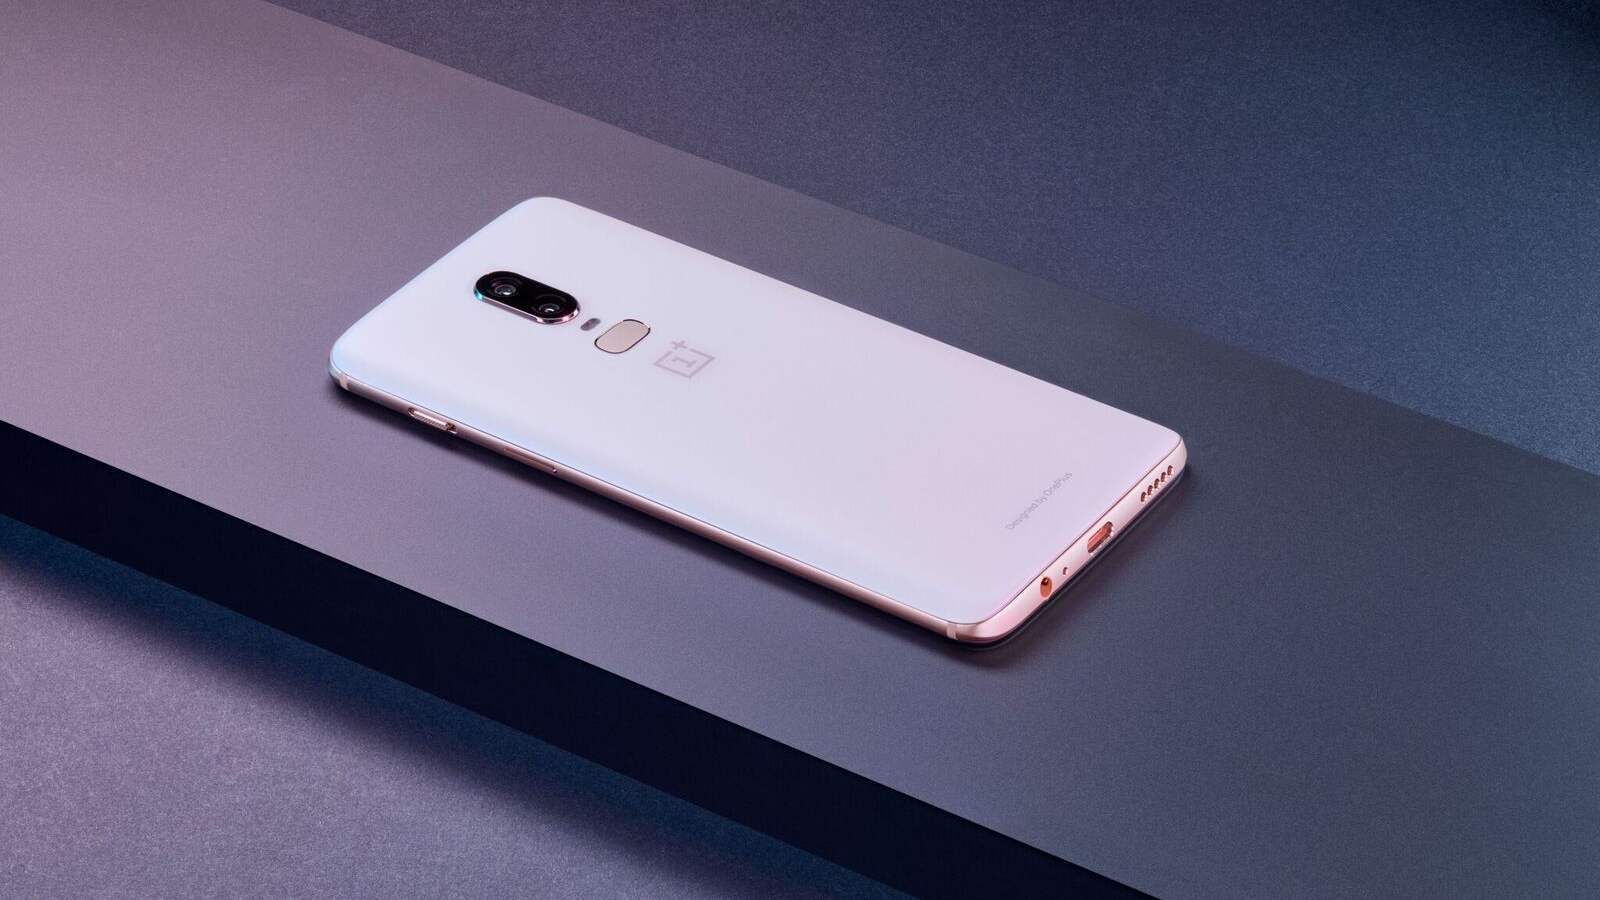 OnePlus 6, sold out in meno di 24 ore per l'edizione Silk White thumbnail